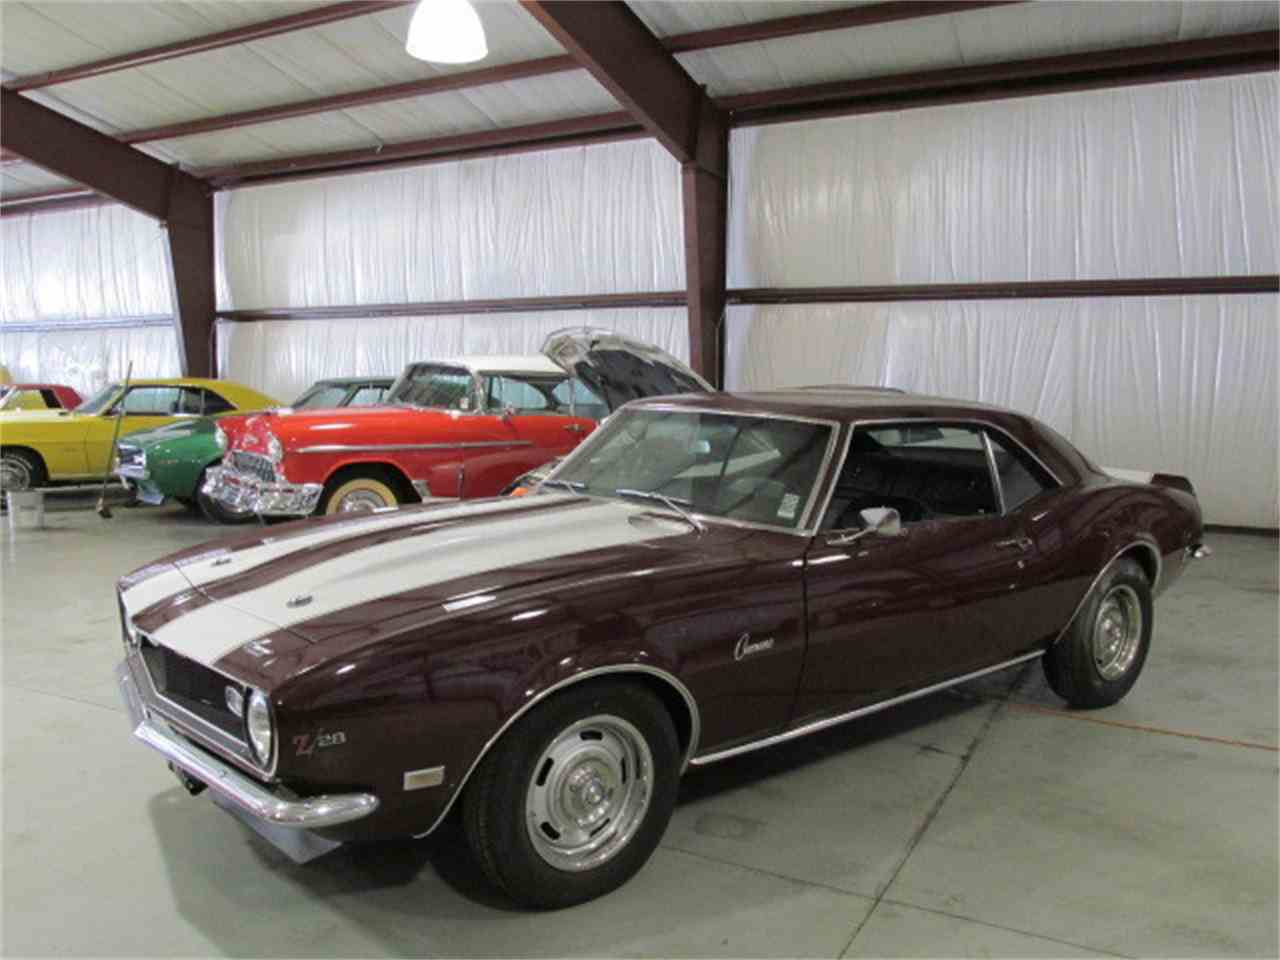 1968 Chevrolet Camaro Z28 For Sale Classiccars Com Cc 619961